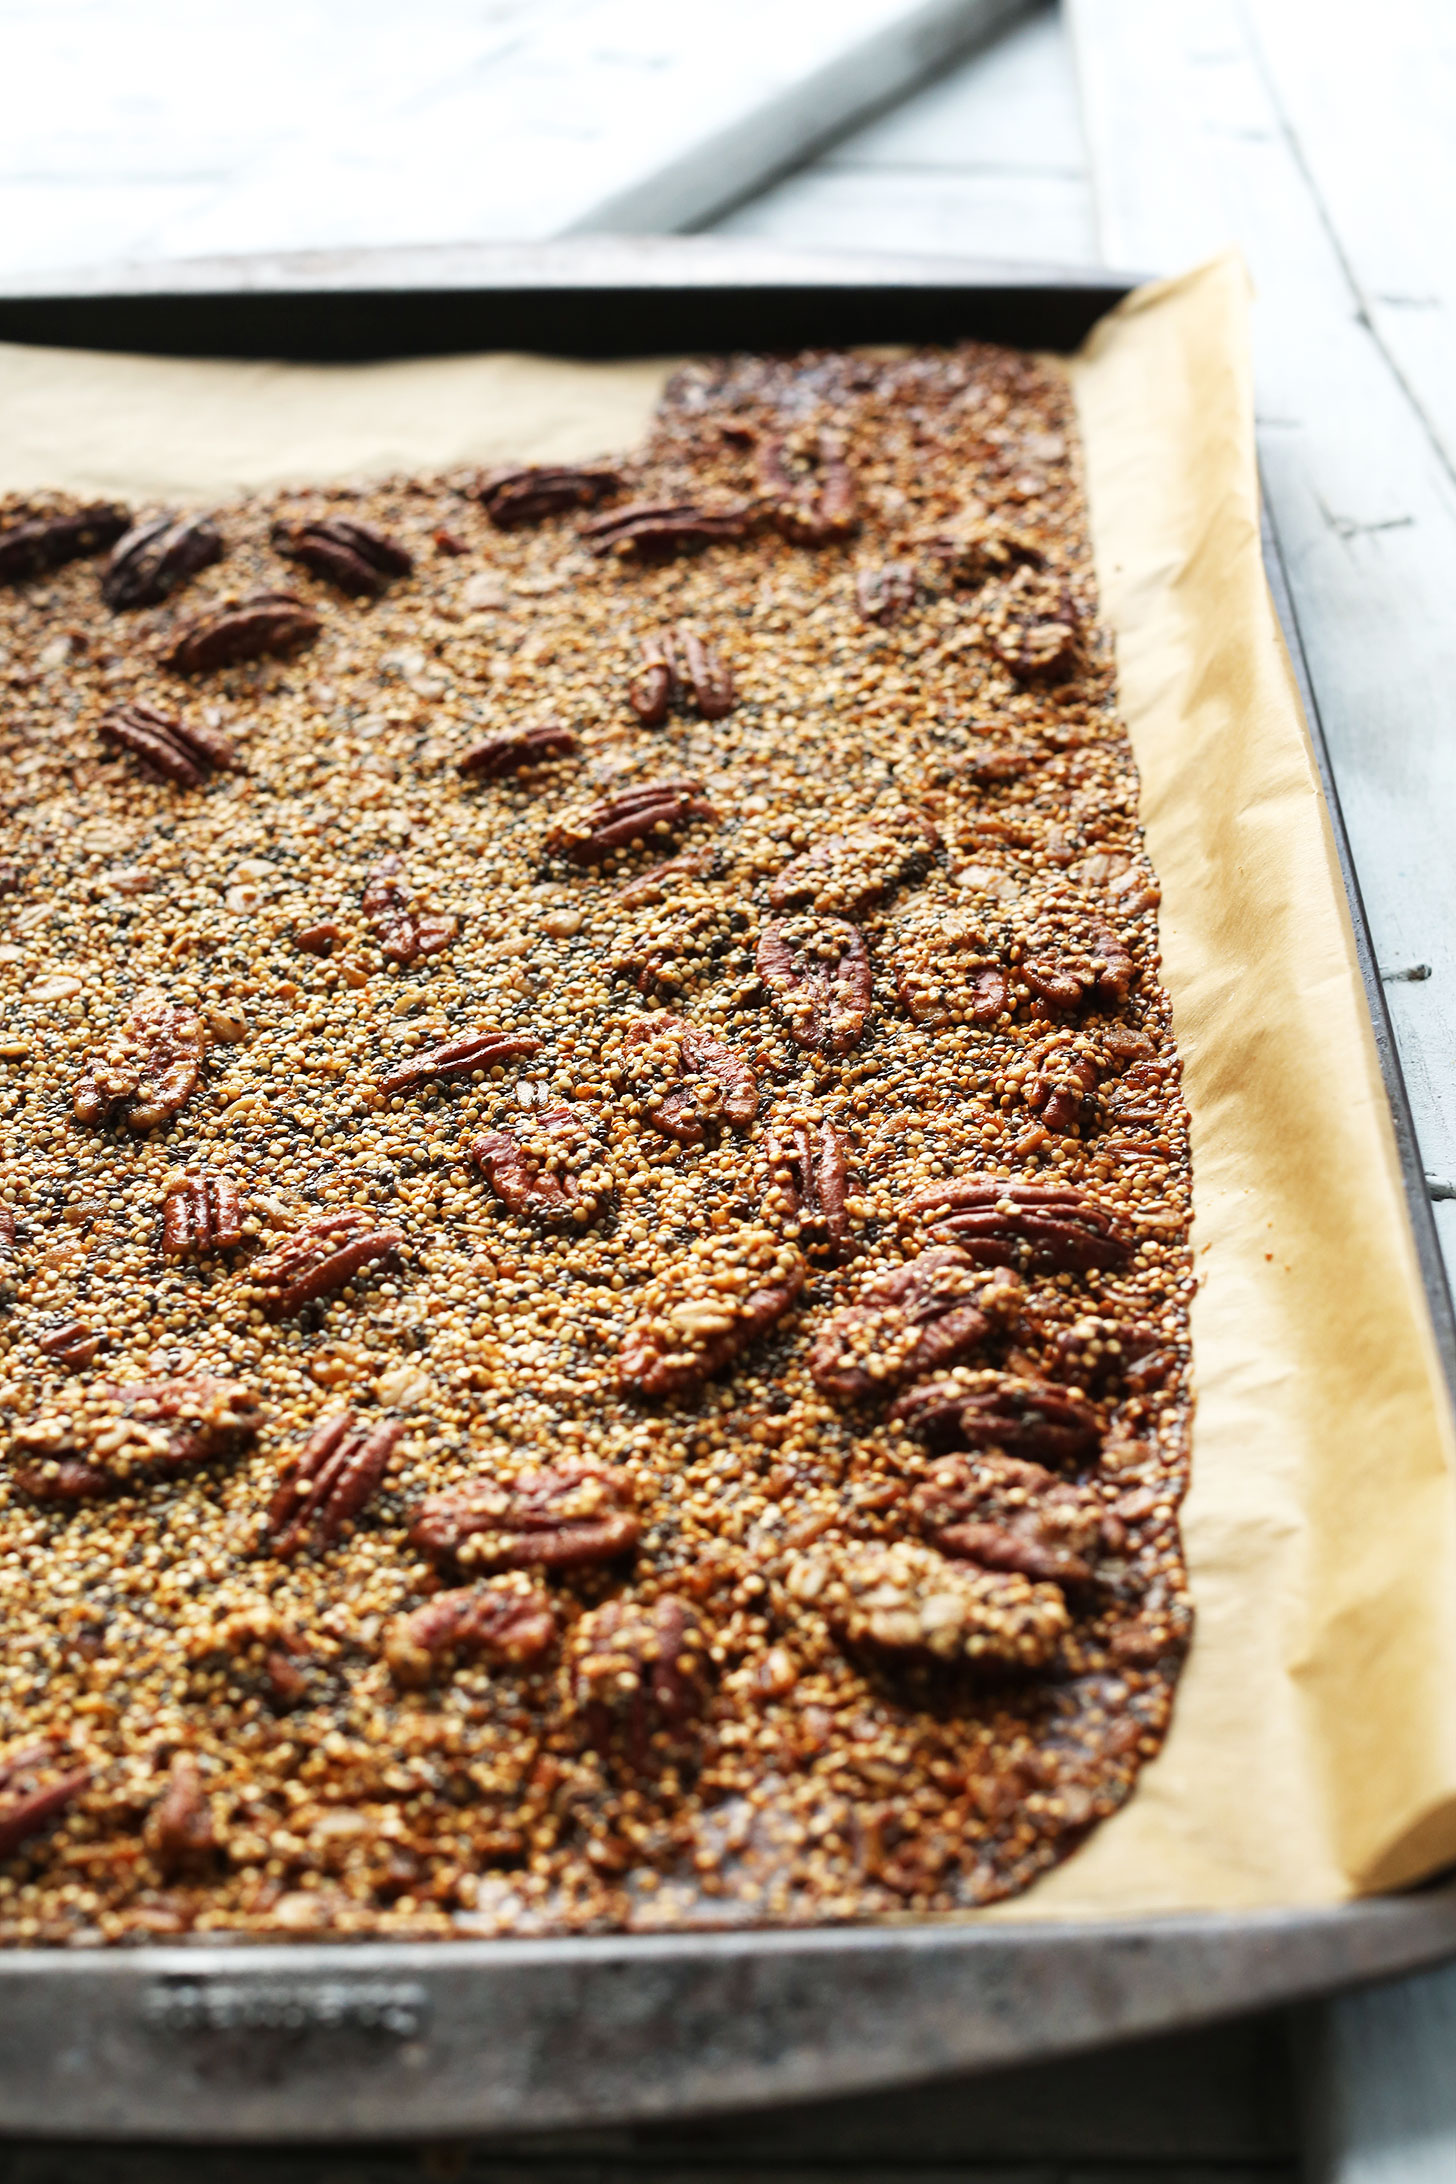 Parchment-lined baking sheet filled with our healthy homemade Quinoa Brittle recipe